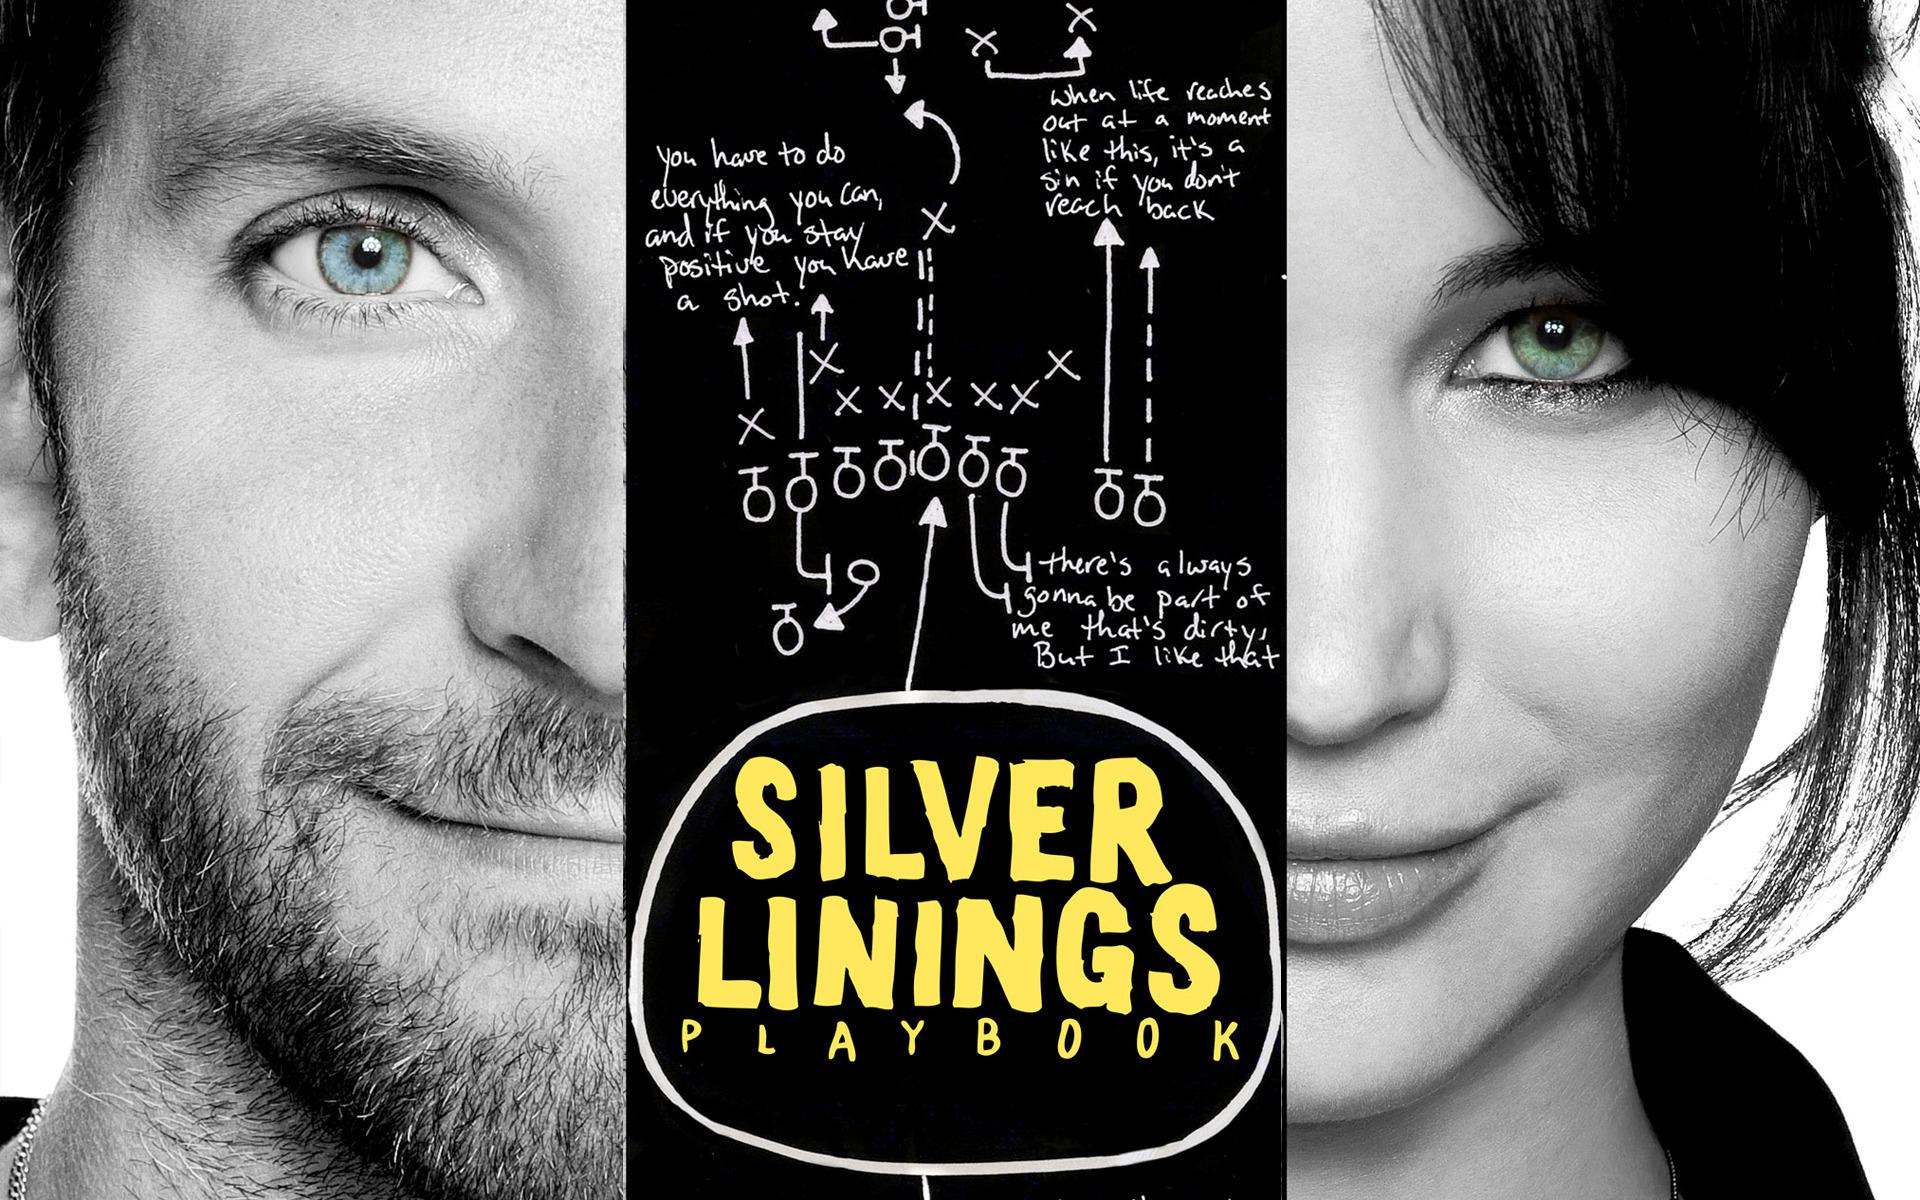 silver_linings_playbook-wide